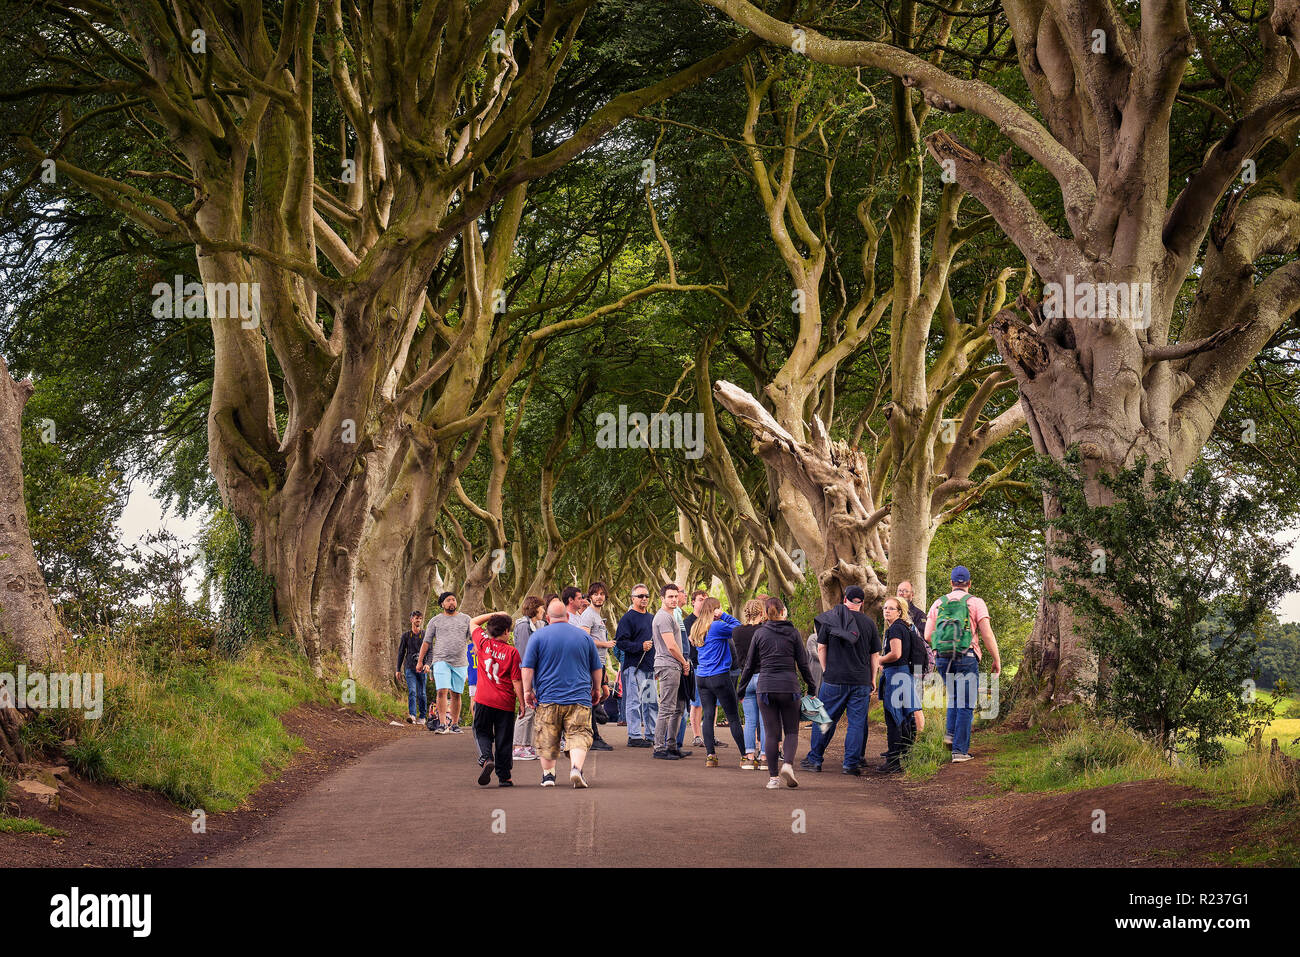 Tourists visiting the Dark Hedges in Northern Ireland Stock Photo